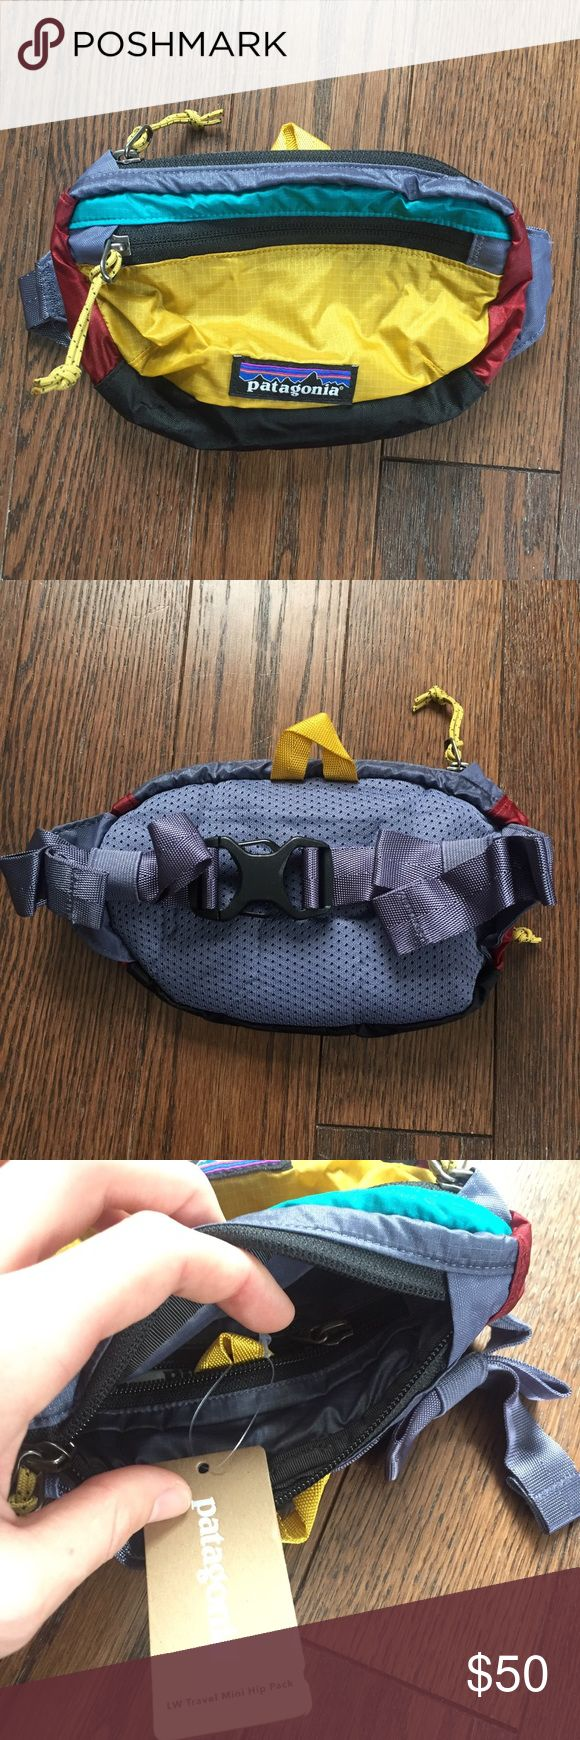 "Patagonia Travel Mini Hip Pack Fanny Pack The elusive ""patchwork"" color. This is discontinued by Patagonia. Get it while you can! This is brand new with the tag still attached. Patagonia Bags"